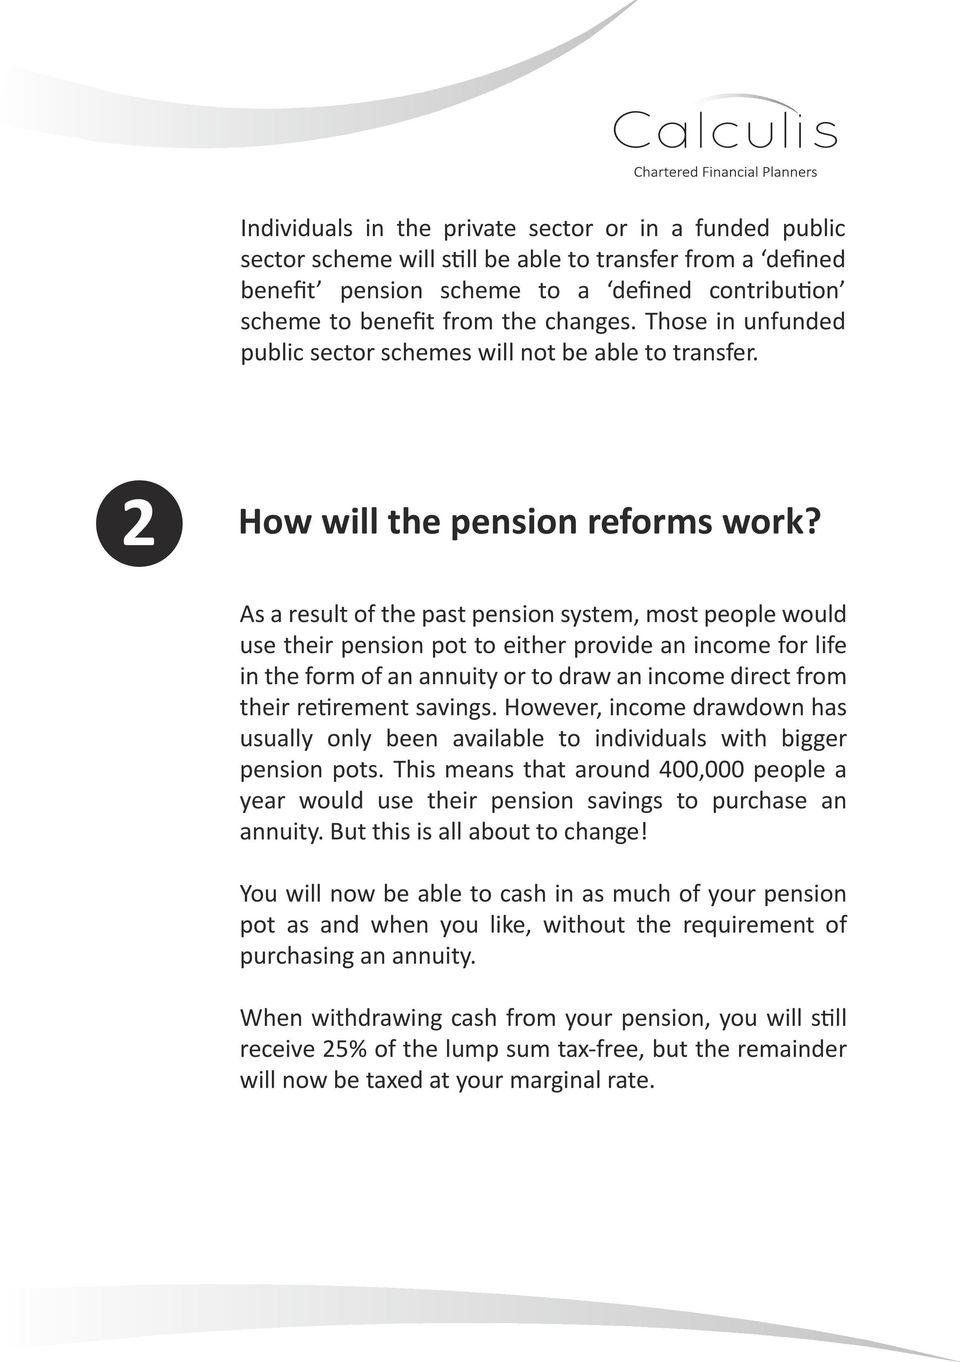 As a result of the past pension system, most people would use their pension pot to either provide an income for life in the form of an annuity or to draw an income direct from their retirement